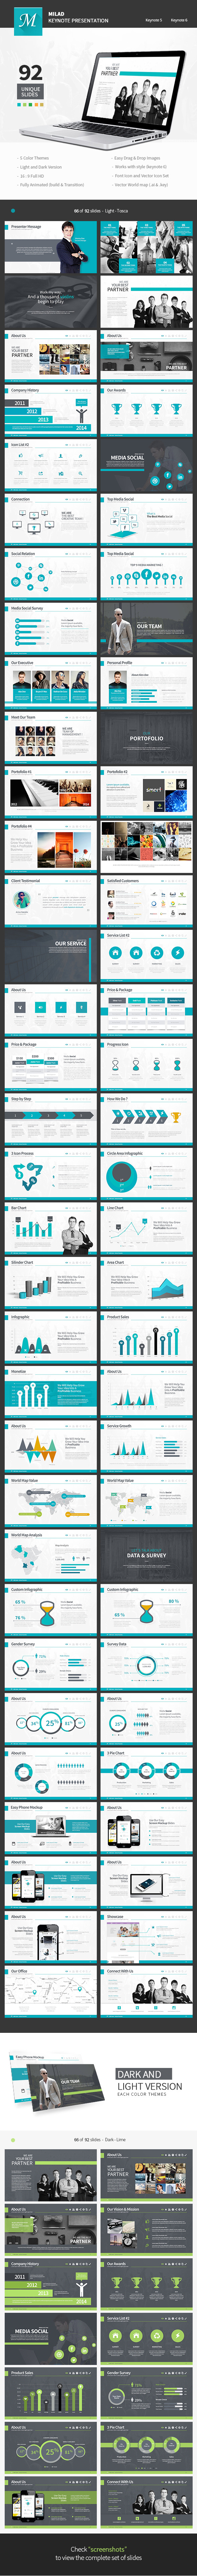 GraphicRiver Milad Creative Keynote Template 9301389